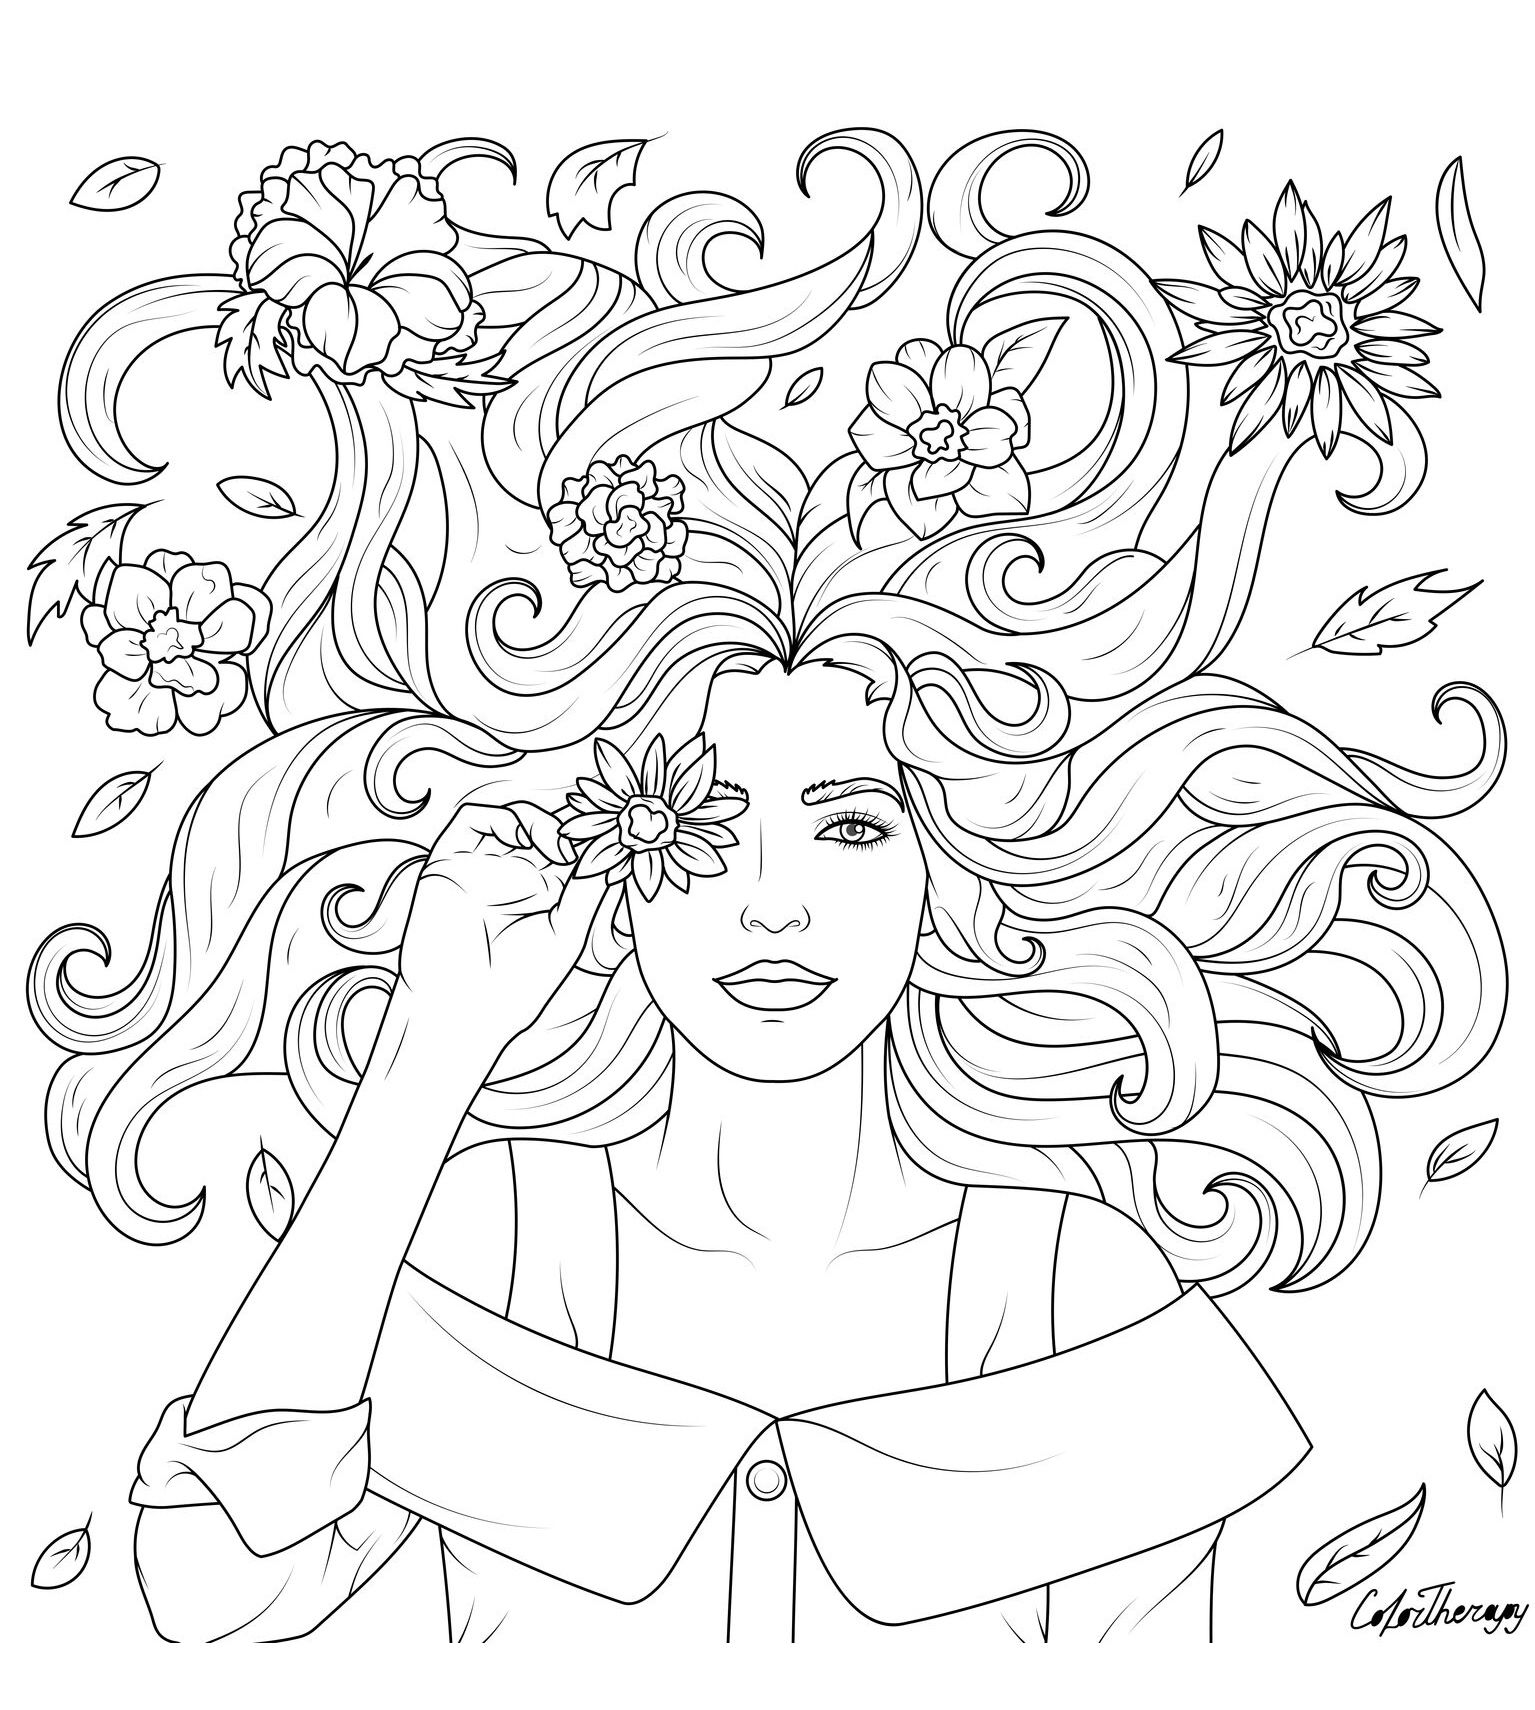 The Sneak Peek For The Next Gift Of The Day Tomorrow Do You Like This One Lady Desenhos Tumblr Para Colorir Flores Para Colorir Imagens Para Colorir [ 1710 x 1535 Pixel ]